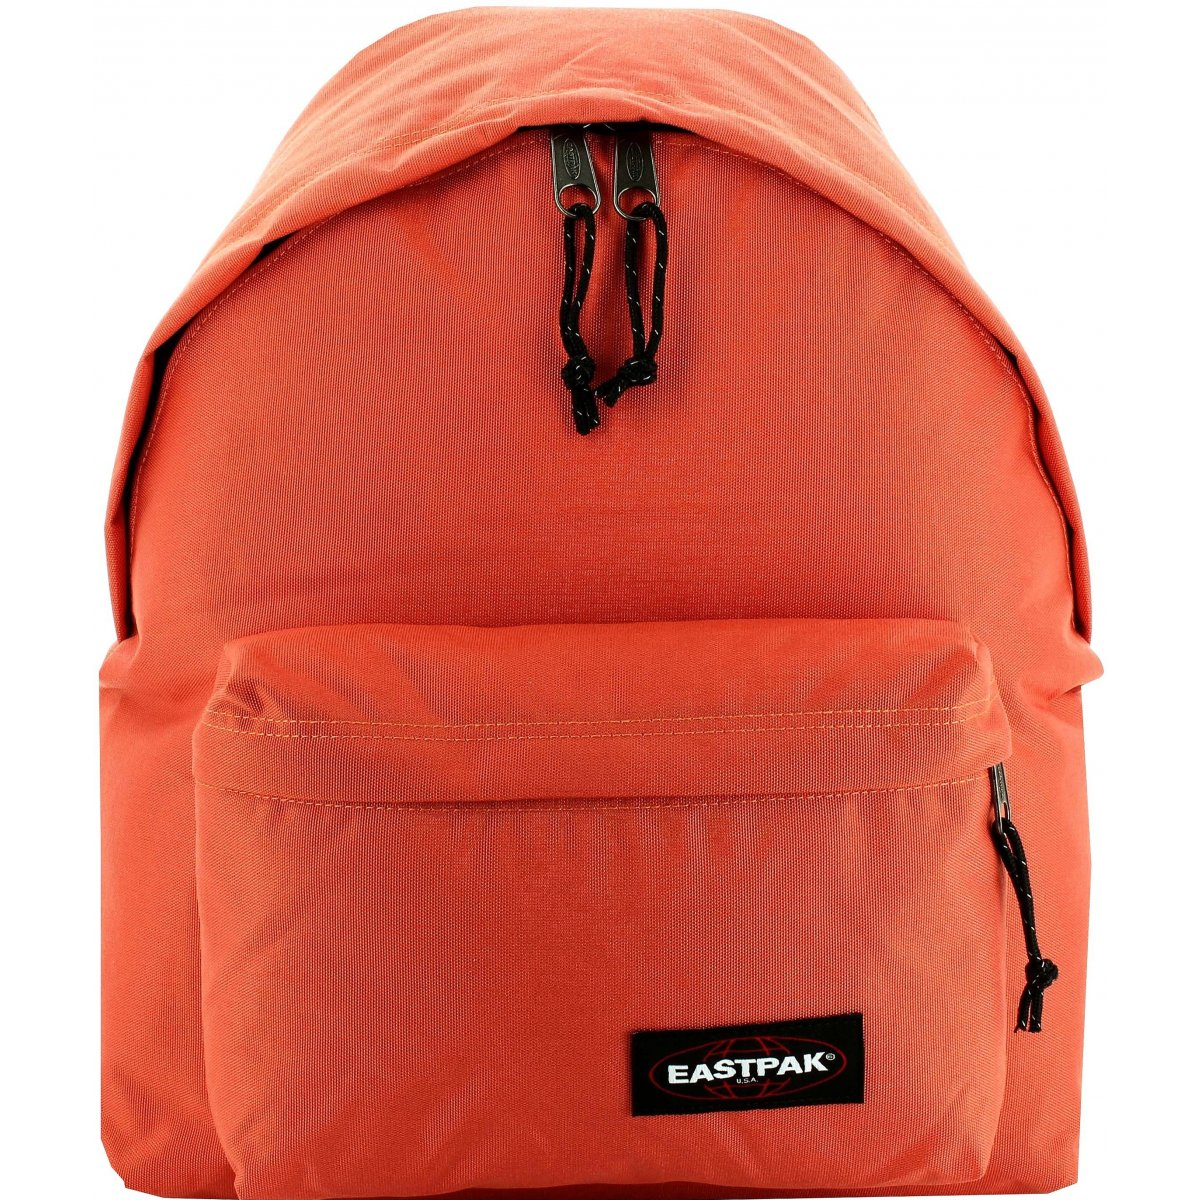 Sac a main eastpak pas cher for Eastpak carreaux